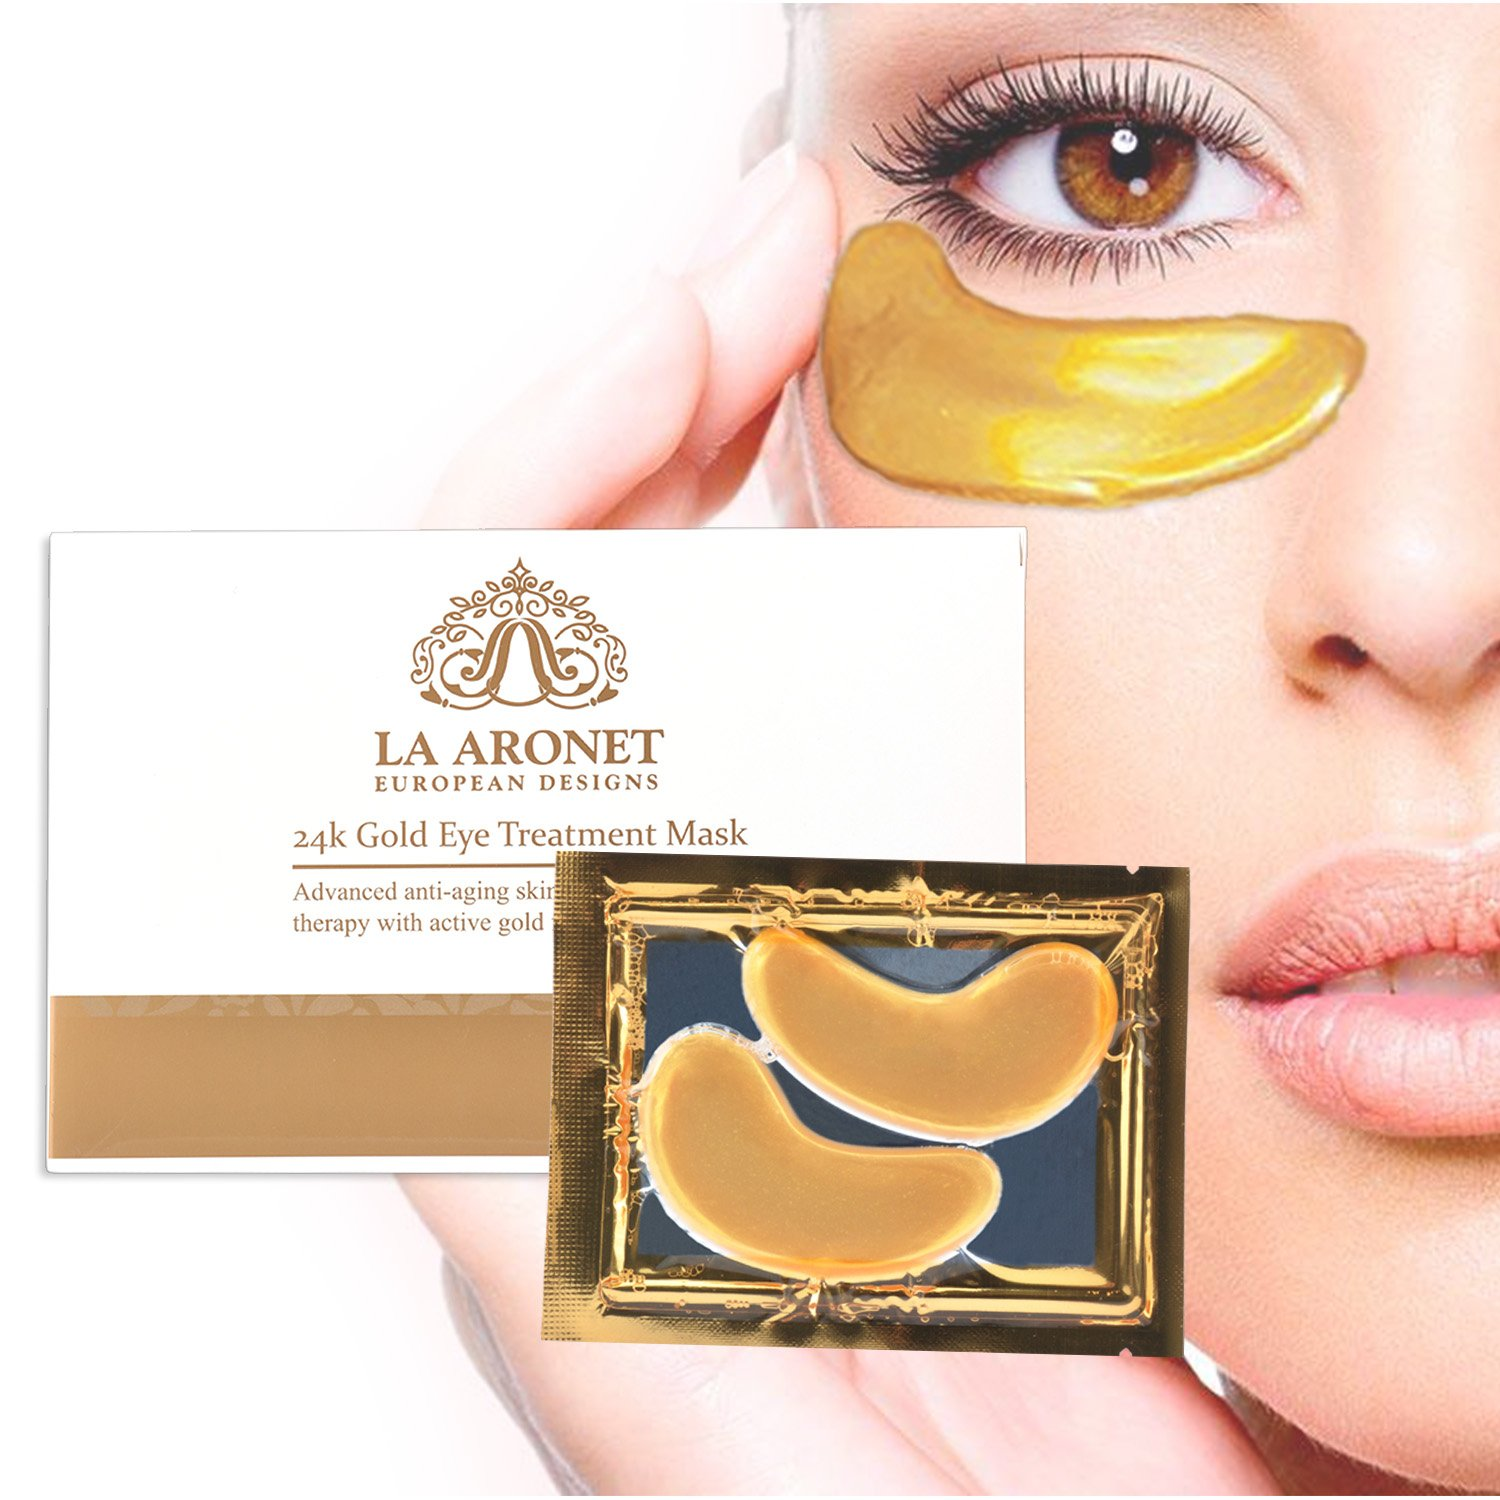 LA ARONET 24K Gold Eye Treatment Masks - (Pack of 20 Pairs) with Anti-Aging Wrinkle Reduction Collagen and Nutrients to Reduce Dark Circles, Bags, and Eye Puffiness, 5 EXTRA BONUS PAIRS included by LA ARONET (Image #1)